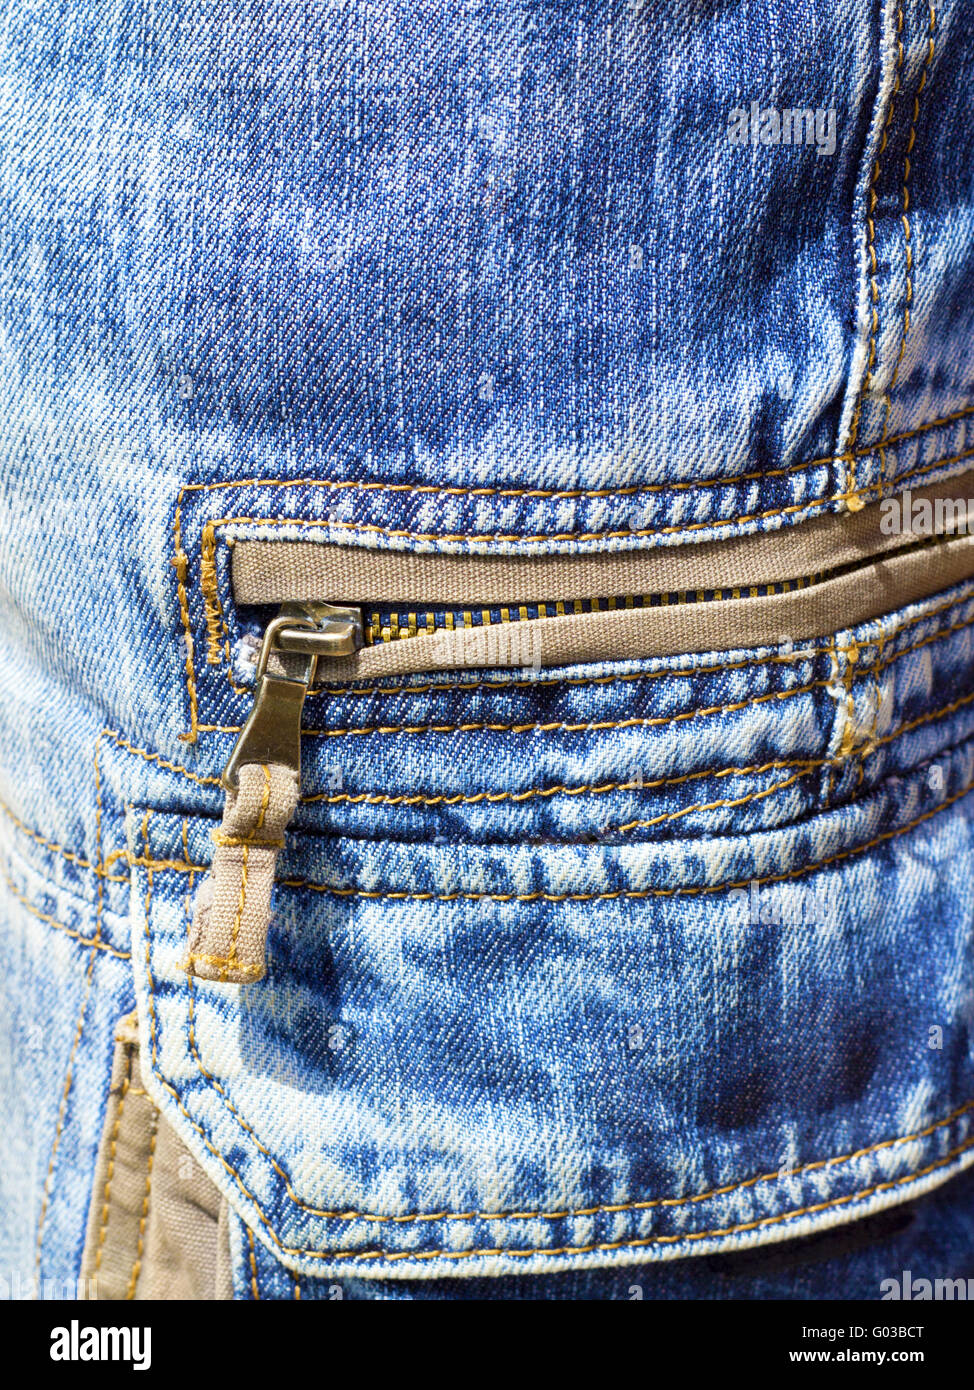 close-up of denim trousers with patch pockets with - Stock Image